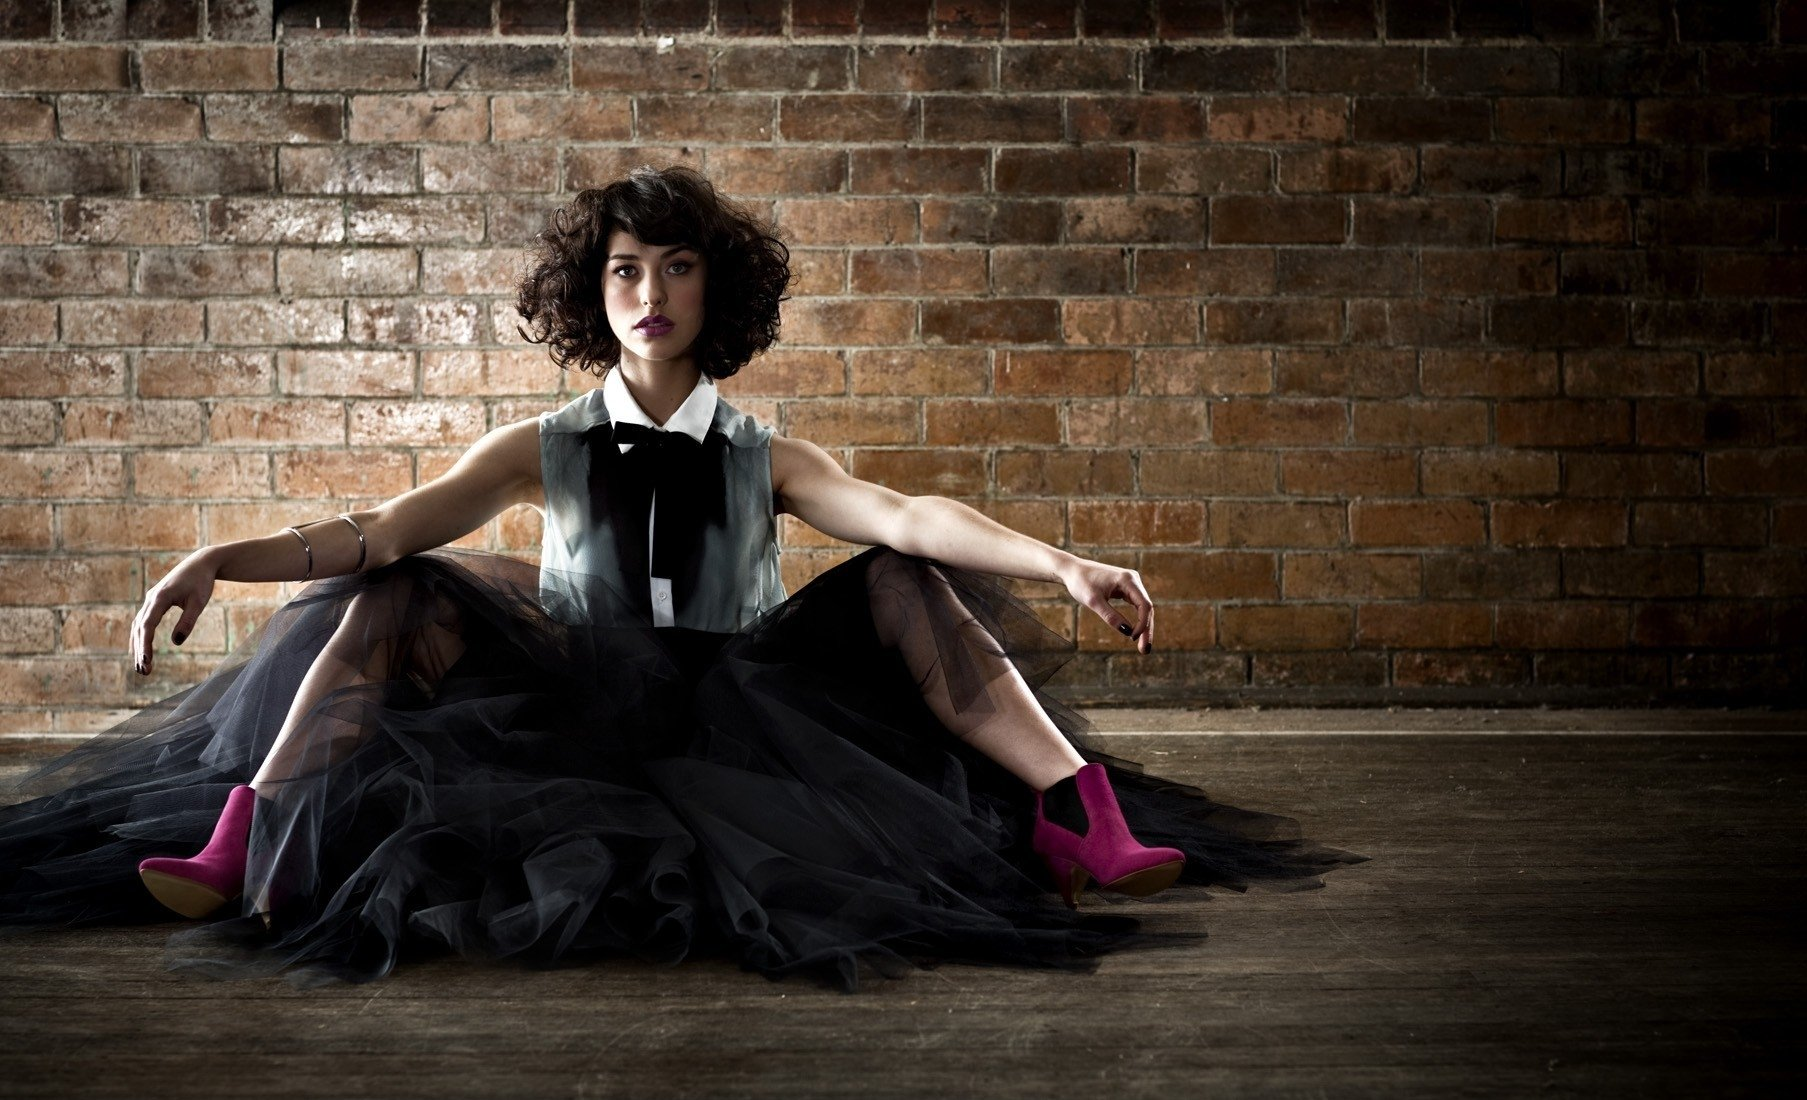 Music - Kimbra Johnson  Wallpaper